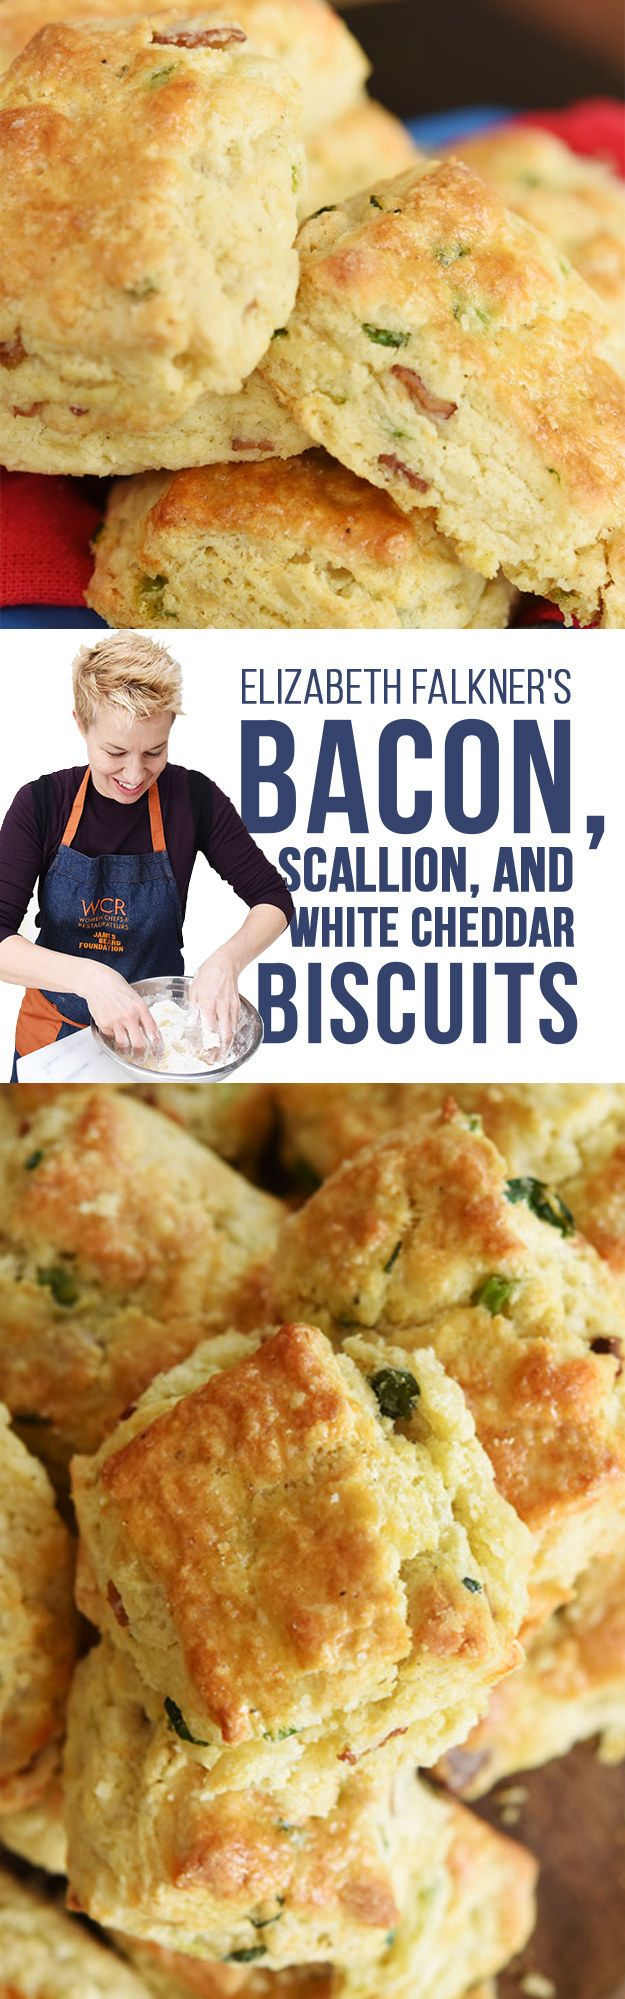 Chef E. F.'s bacon, cheddar biscuits..